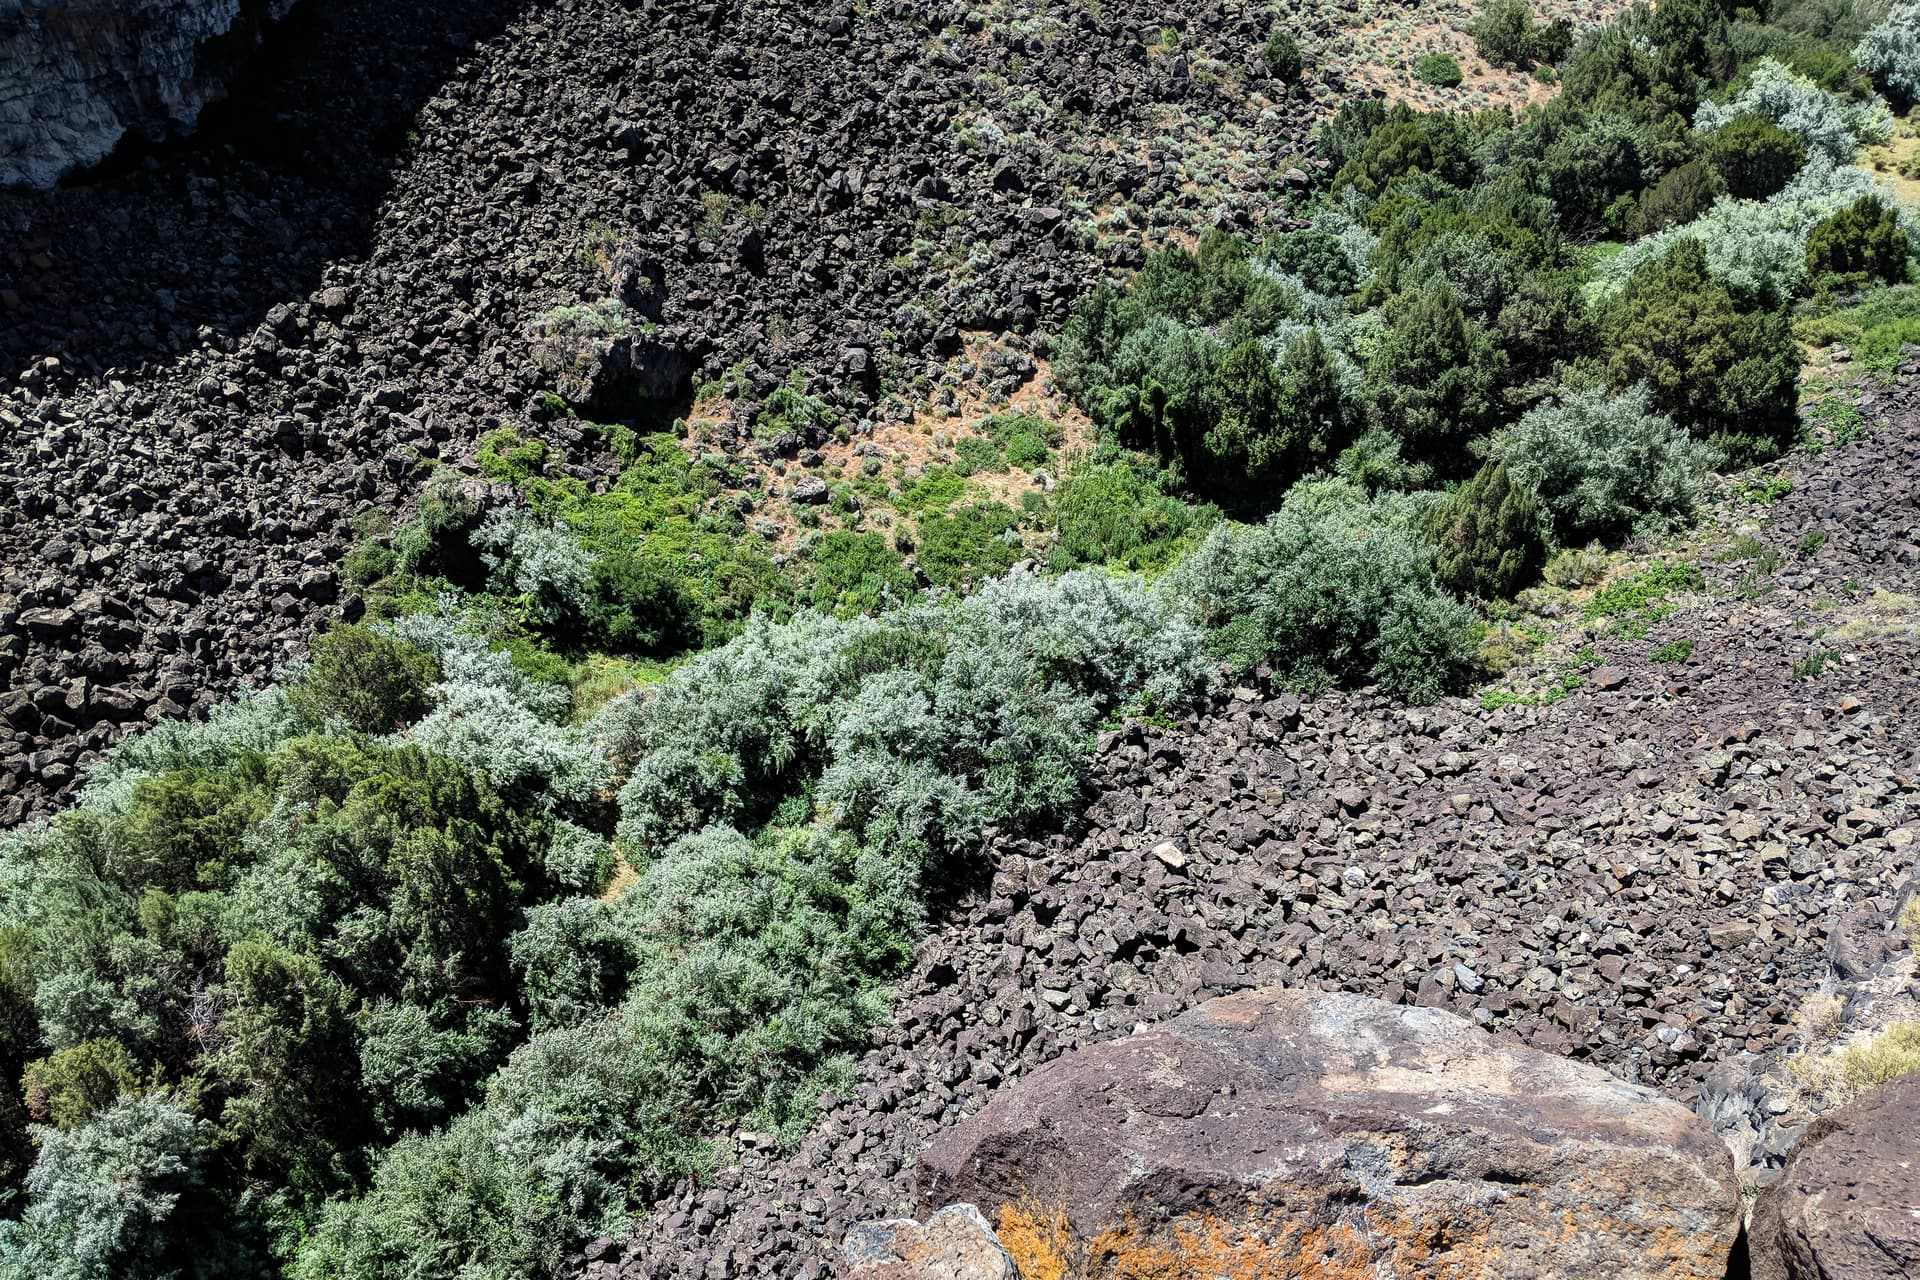 A dense swath of sage, Russian Olives, and native trees cuts diagonally across a field of broken basalt boulders.